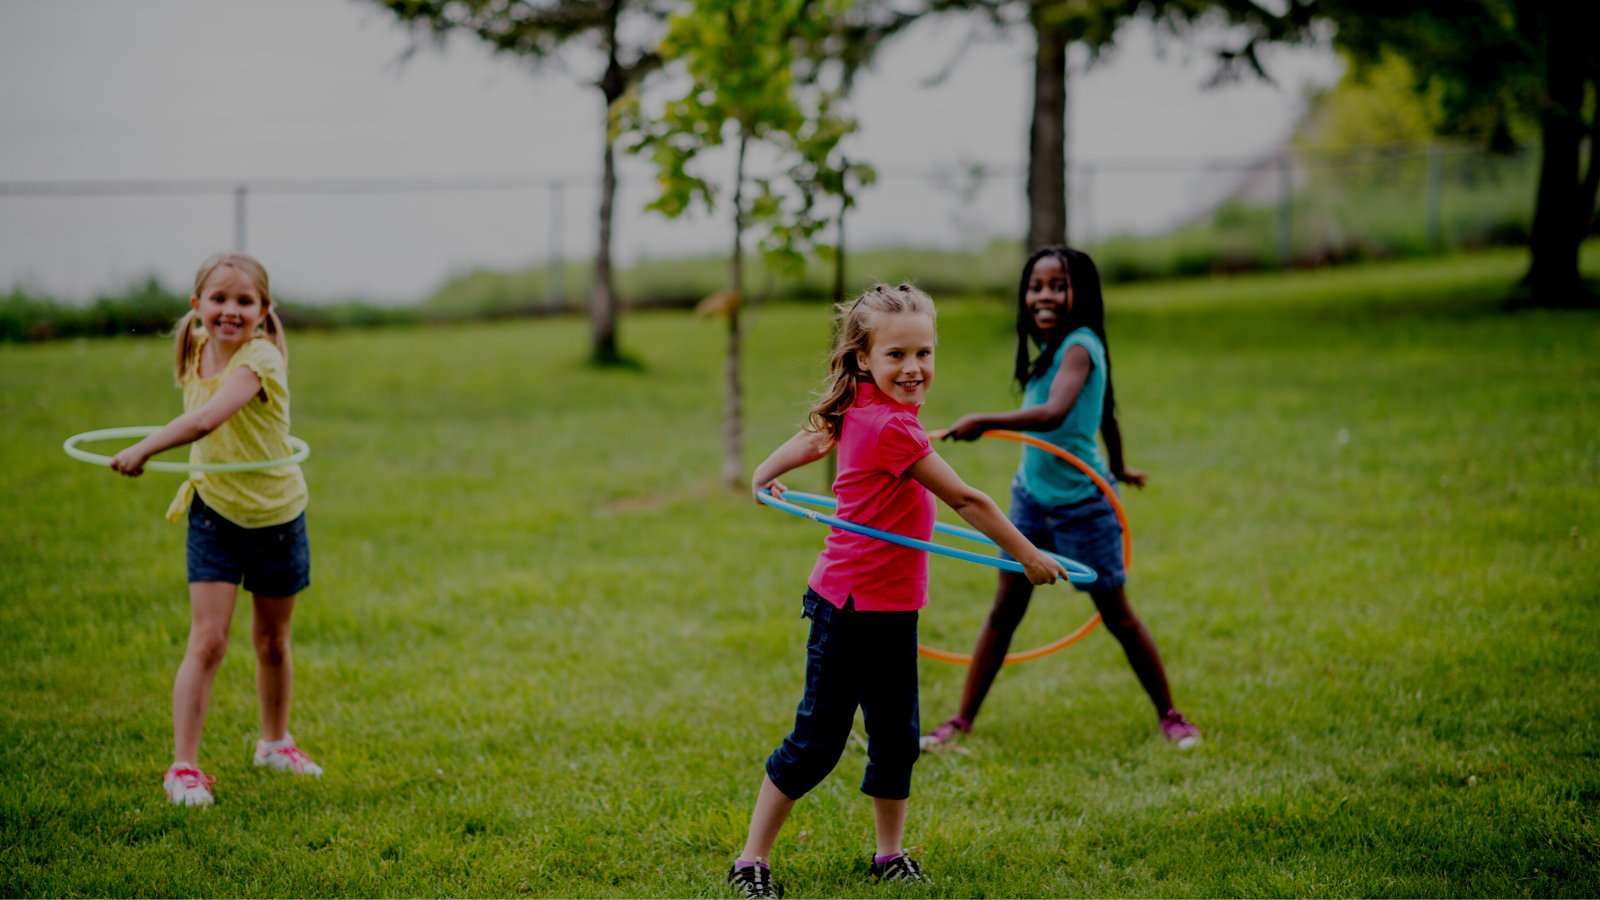 Summer Break: Activities to Keep your School-ager Engaged